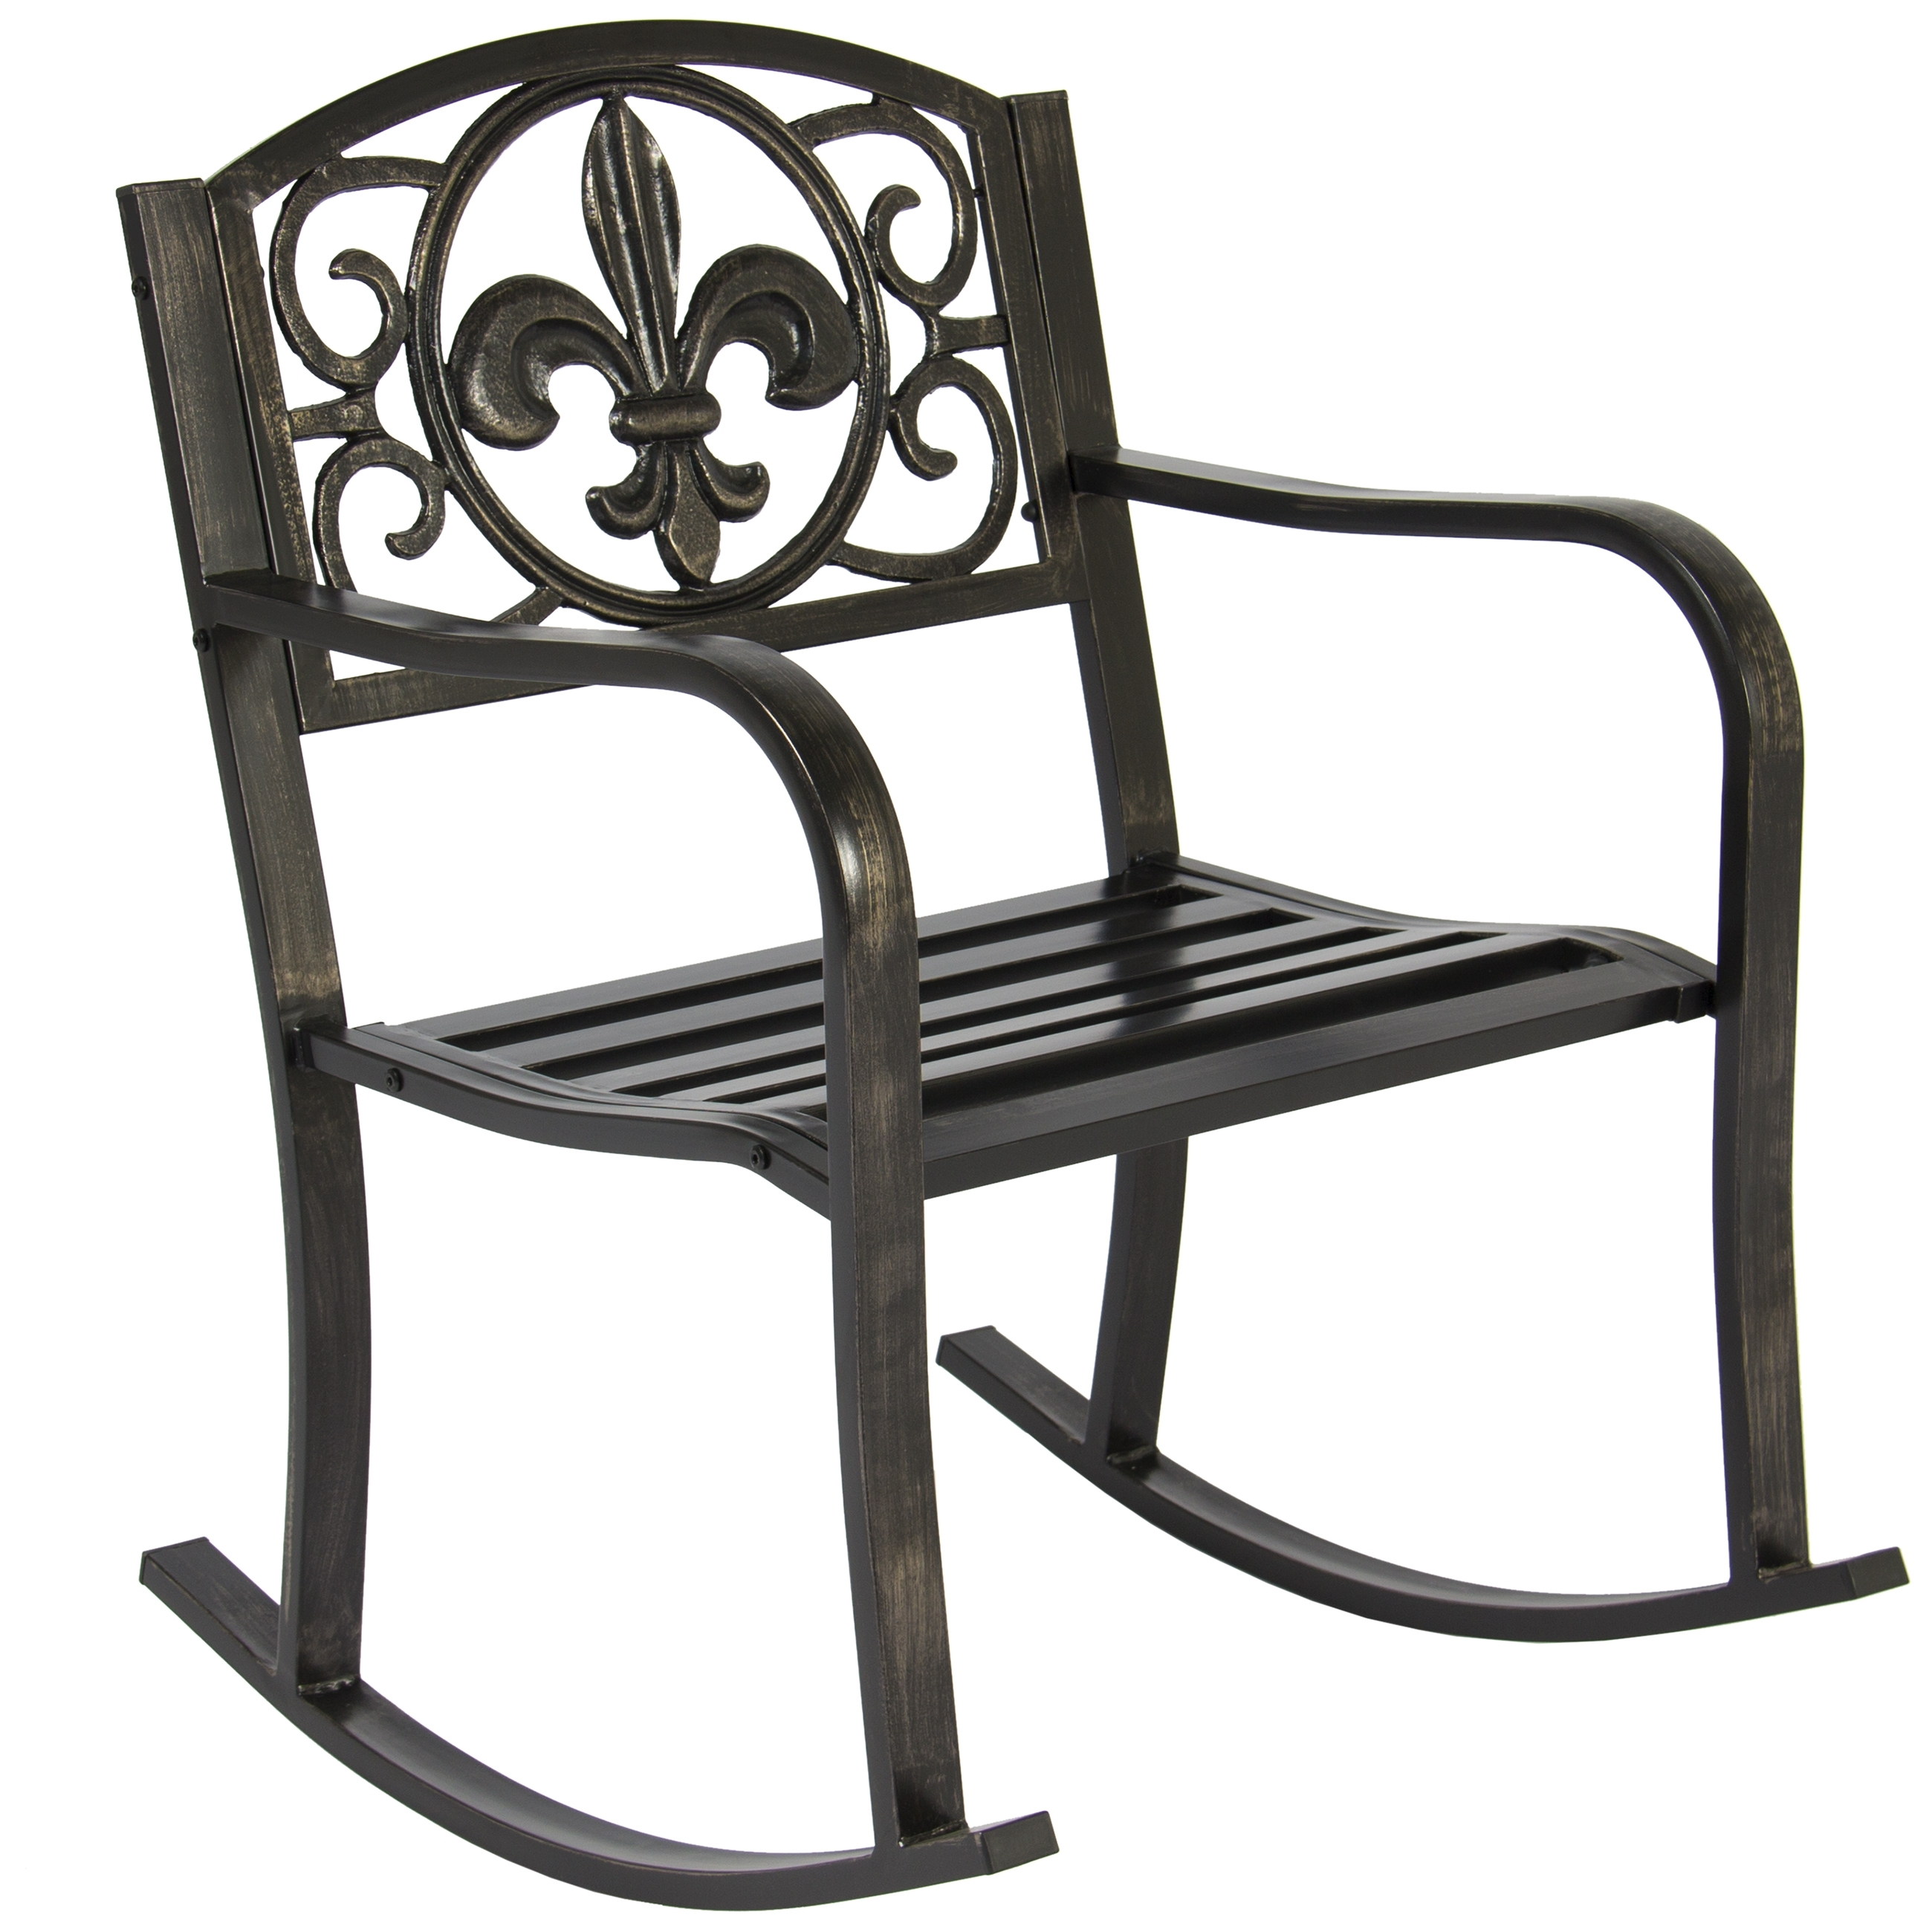 Best Choice Products Metal Rocking Chair Seat For Patio, Porch, Deck Throughout Black Rocking Chairs (#1 of 15)